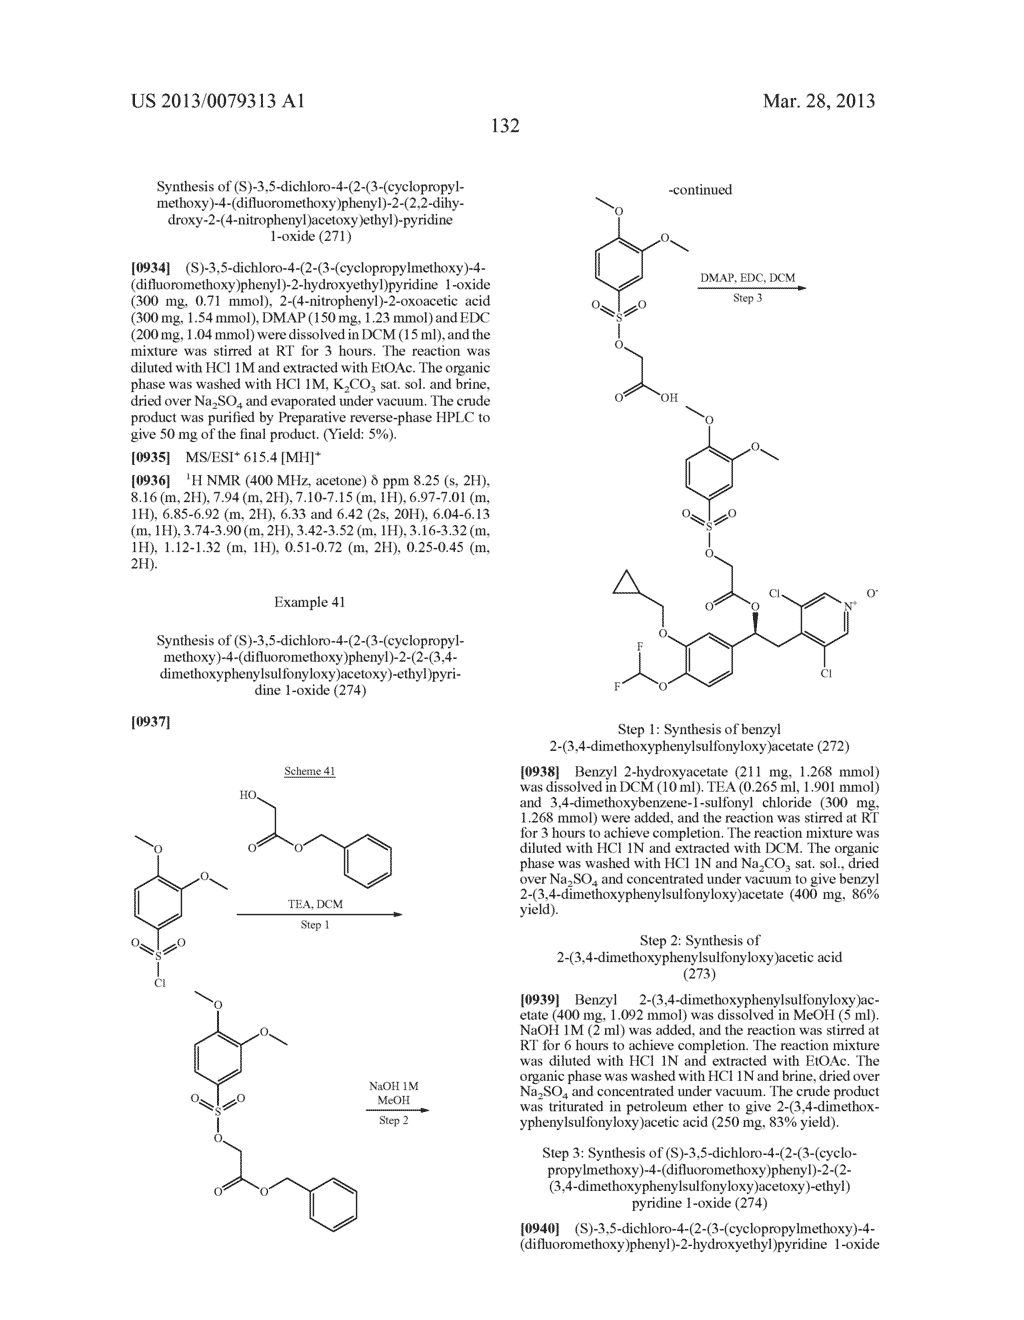 DERIVATIVES OF 1-PHENYL-2-PYRIDINYL ALKYL ALCOHOLS AS PHOSPHODIESTERASE     INHIBITORS - diagram, schematic, and image 133